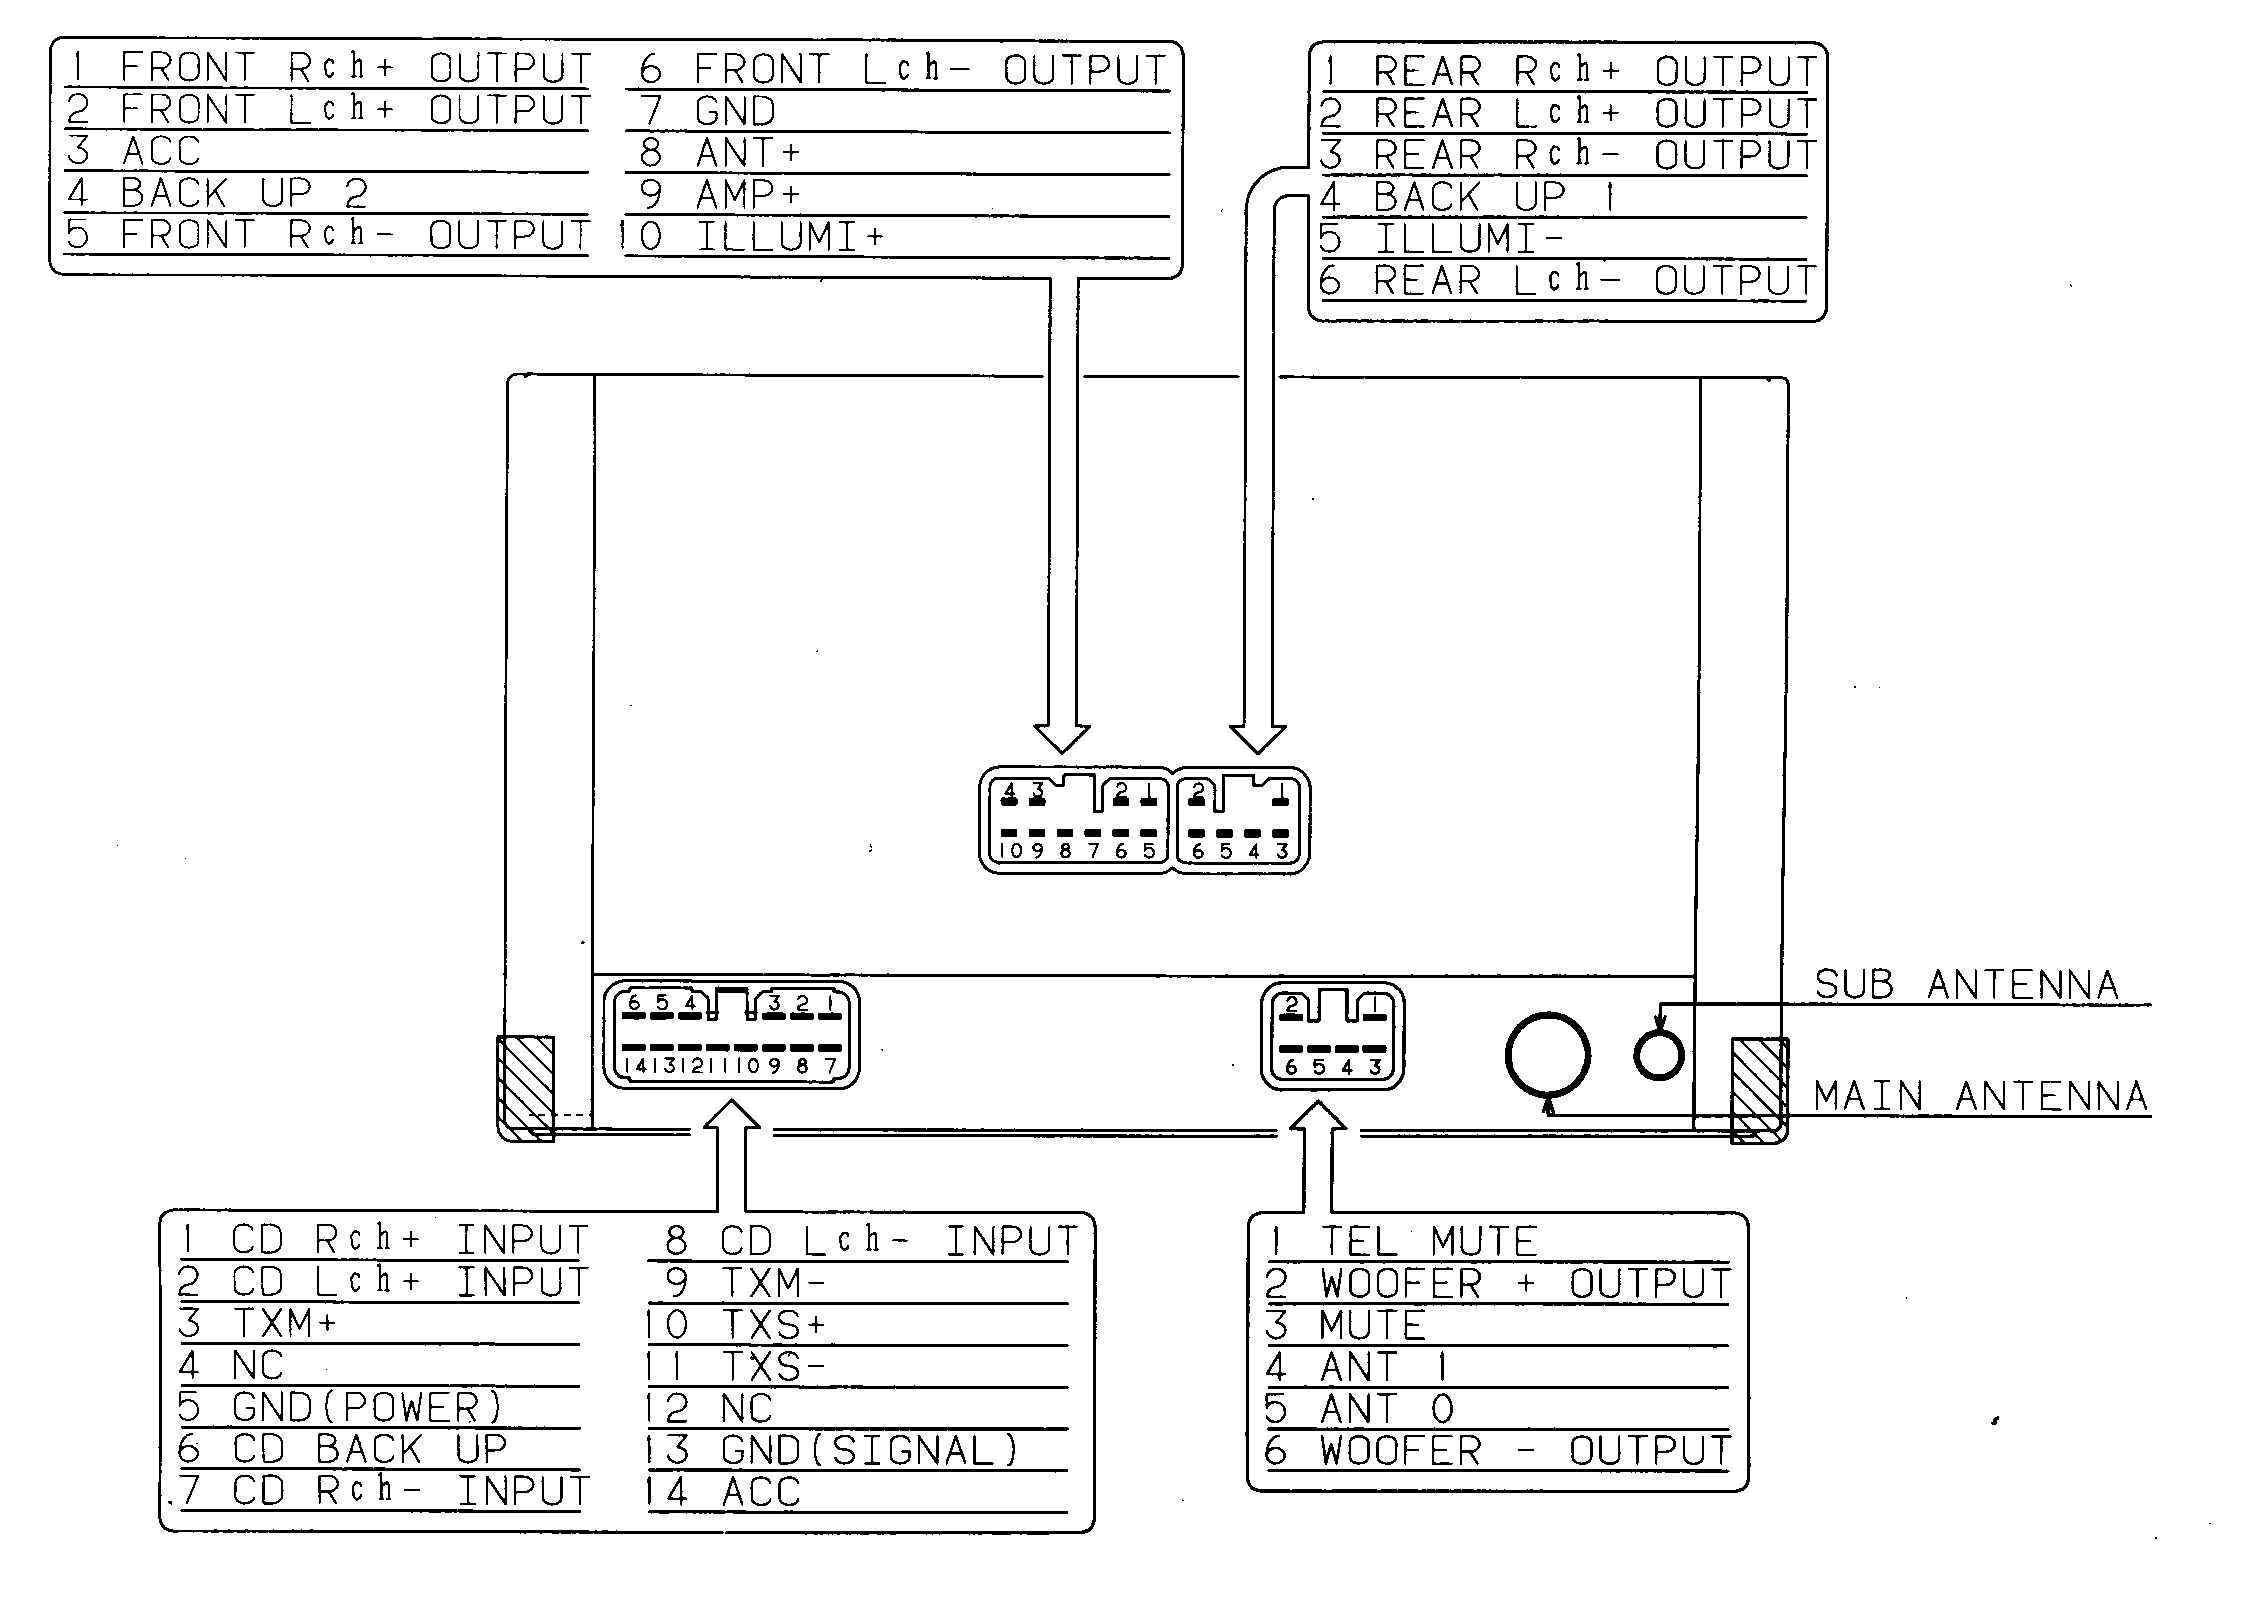 Lexus car stereo wiring diagram harness pinout connector wire 1996 jeep grand cherokee car stereo radio wiring diagram wiring 2002 jeep grand cherokee radio wiring diagram at fashall.co